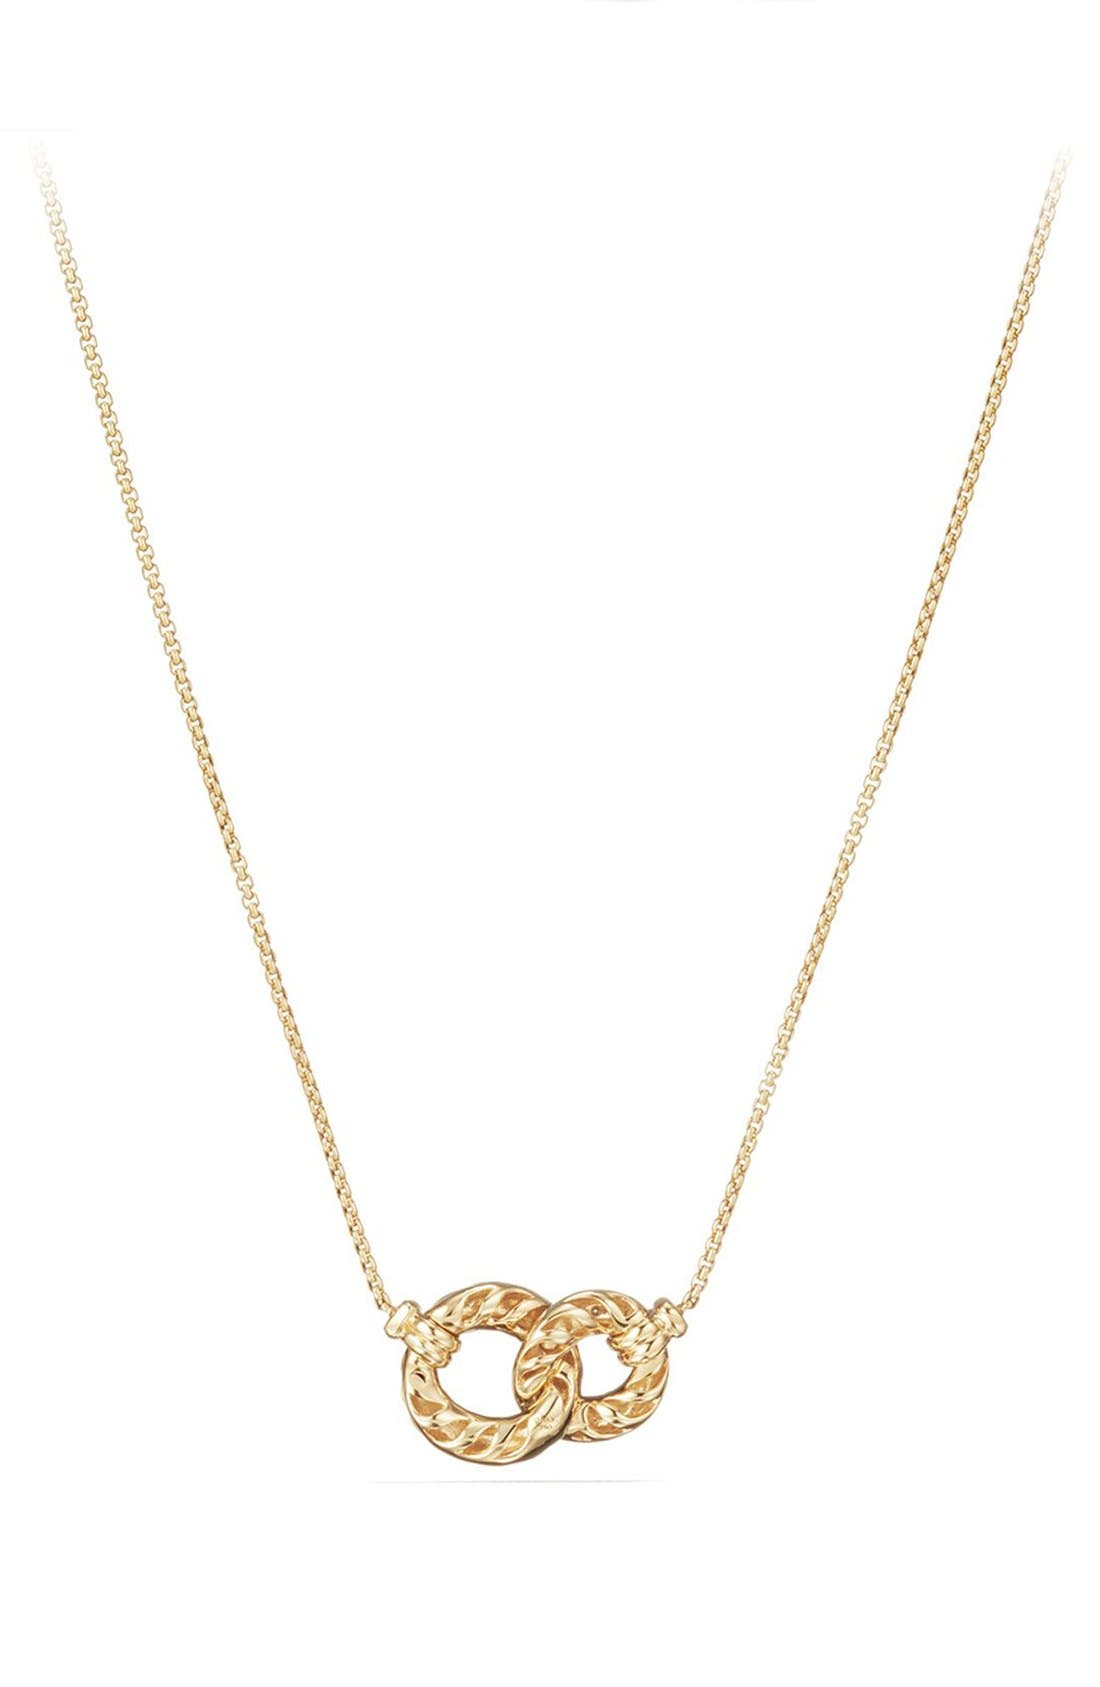 Belmont Extra-Small Double Curb Link Necklace with Diamonds in 18K Gold,                             Main thumbnail 1, color,                             YELLOW GOLD/ DIAMOND